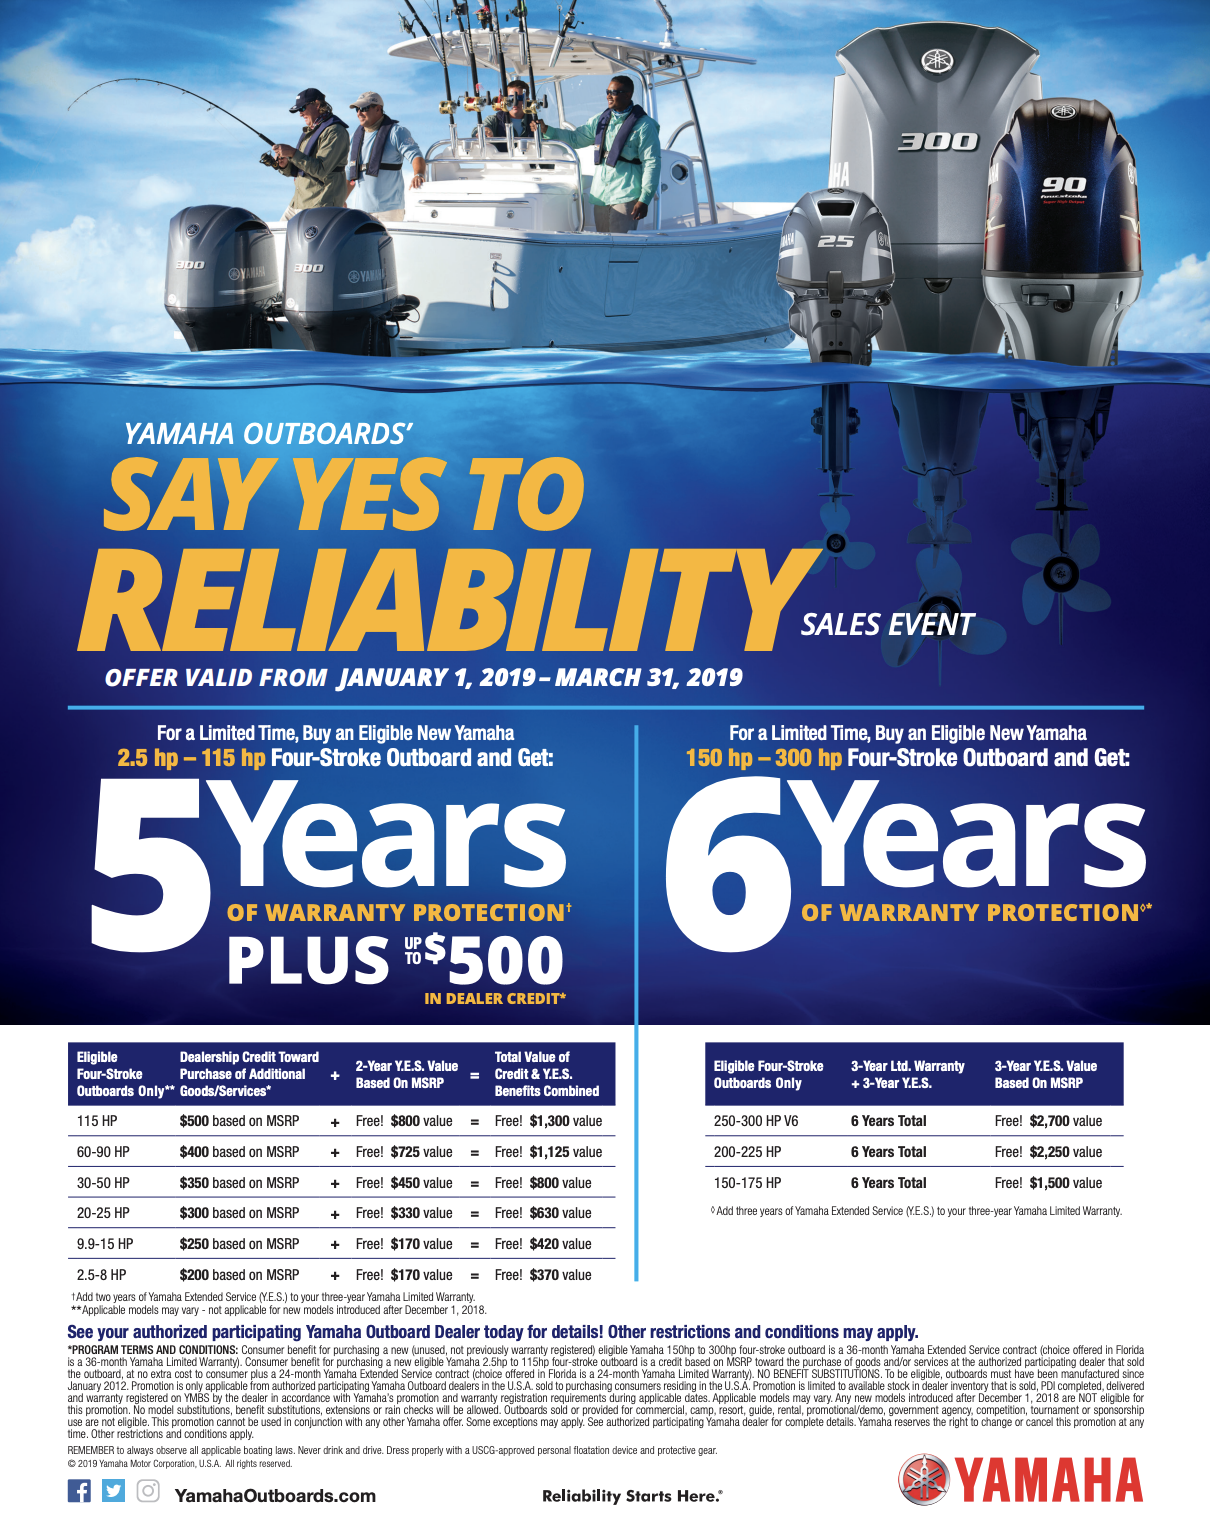 Yamaha Outboards' – Say YES to Reliability Sales Event